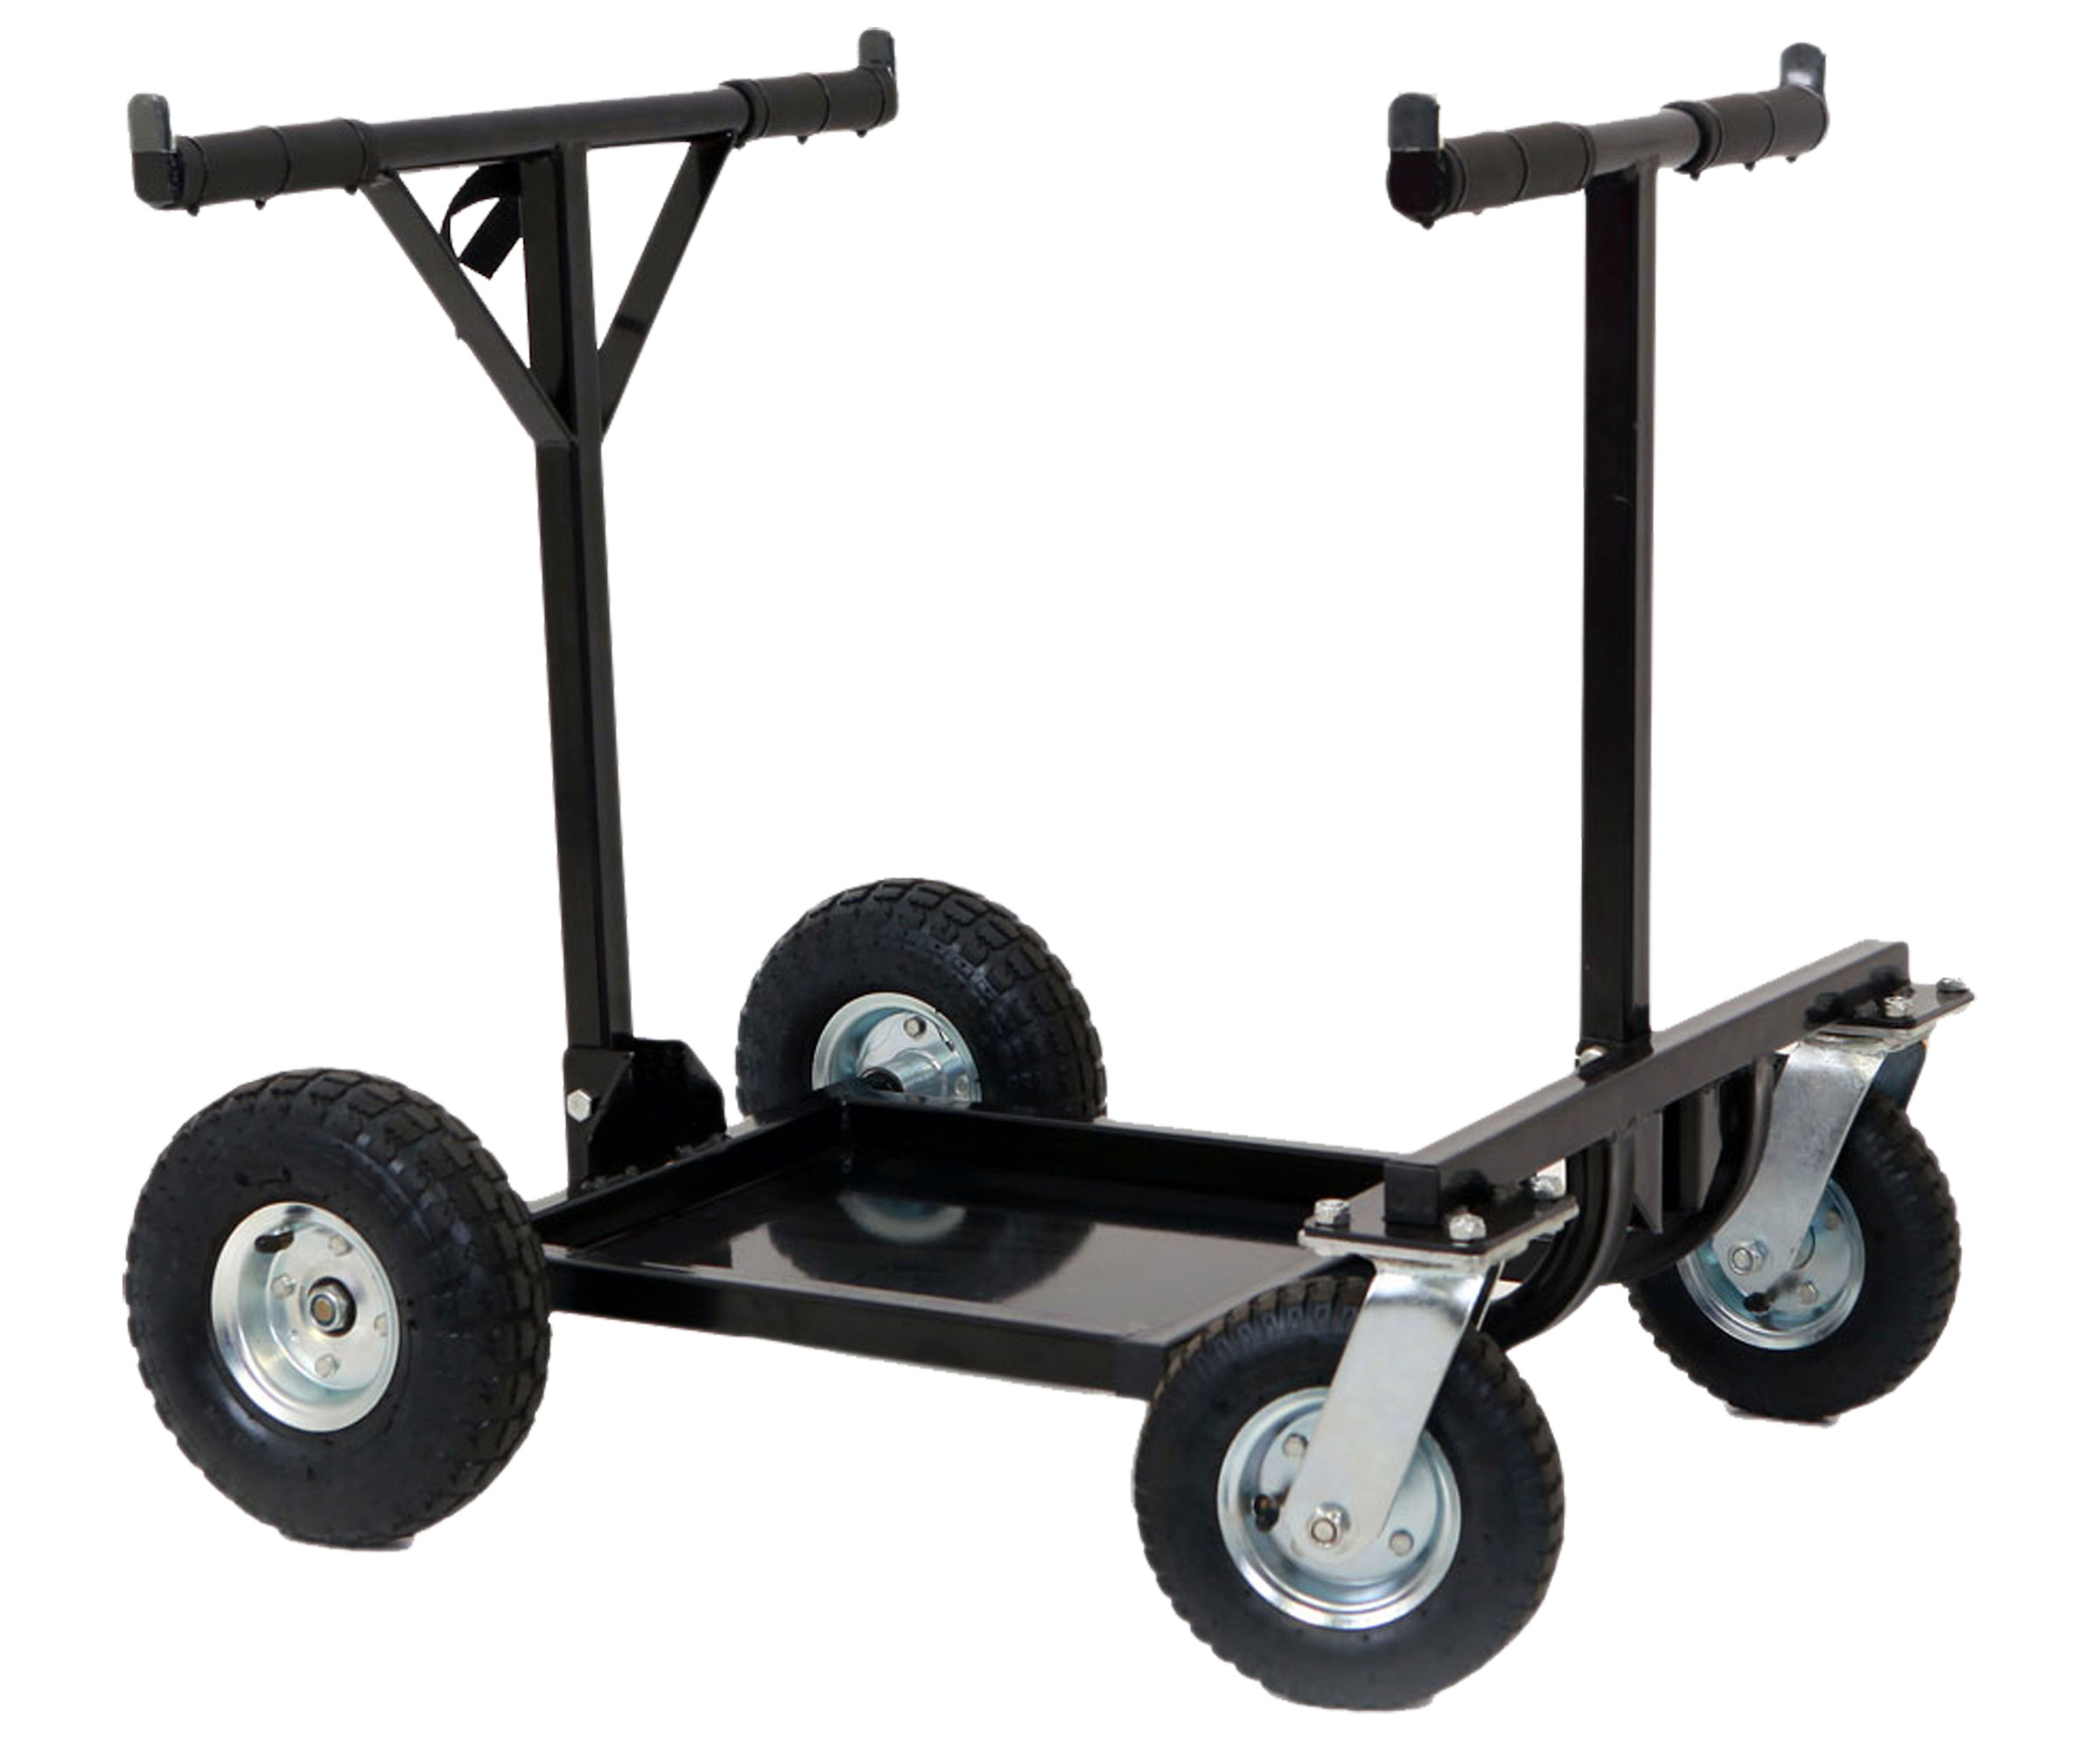 RLV Super Heavy Style Racing Go Kart Stand | RLV0016 | RLV 0016 ...